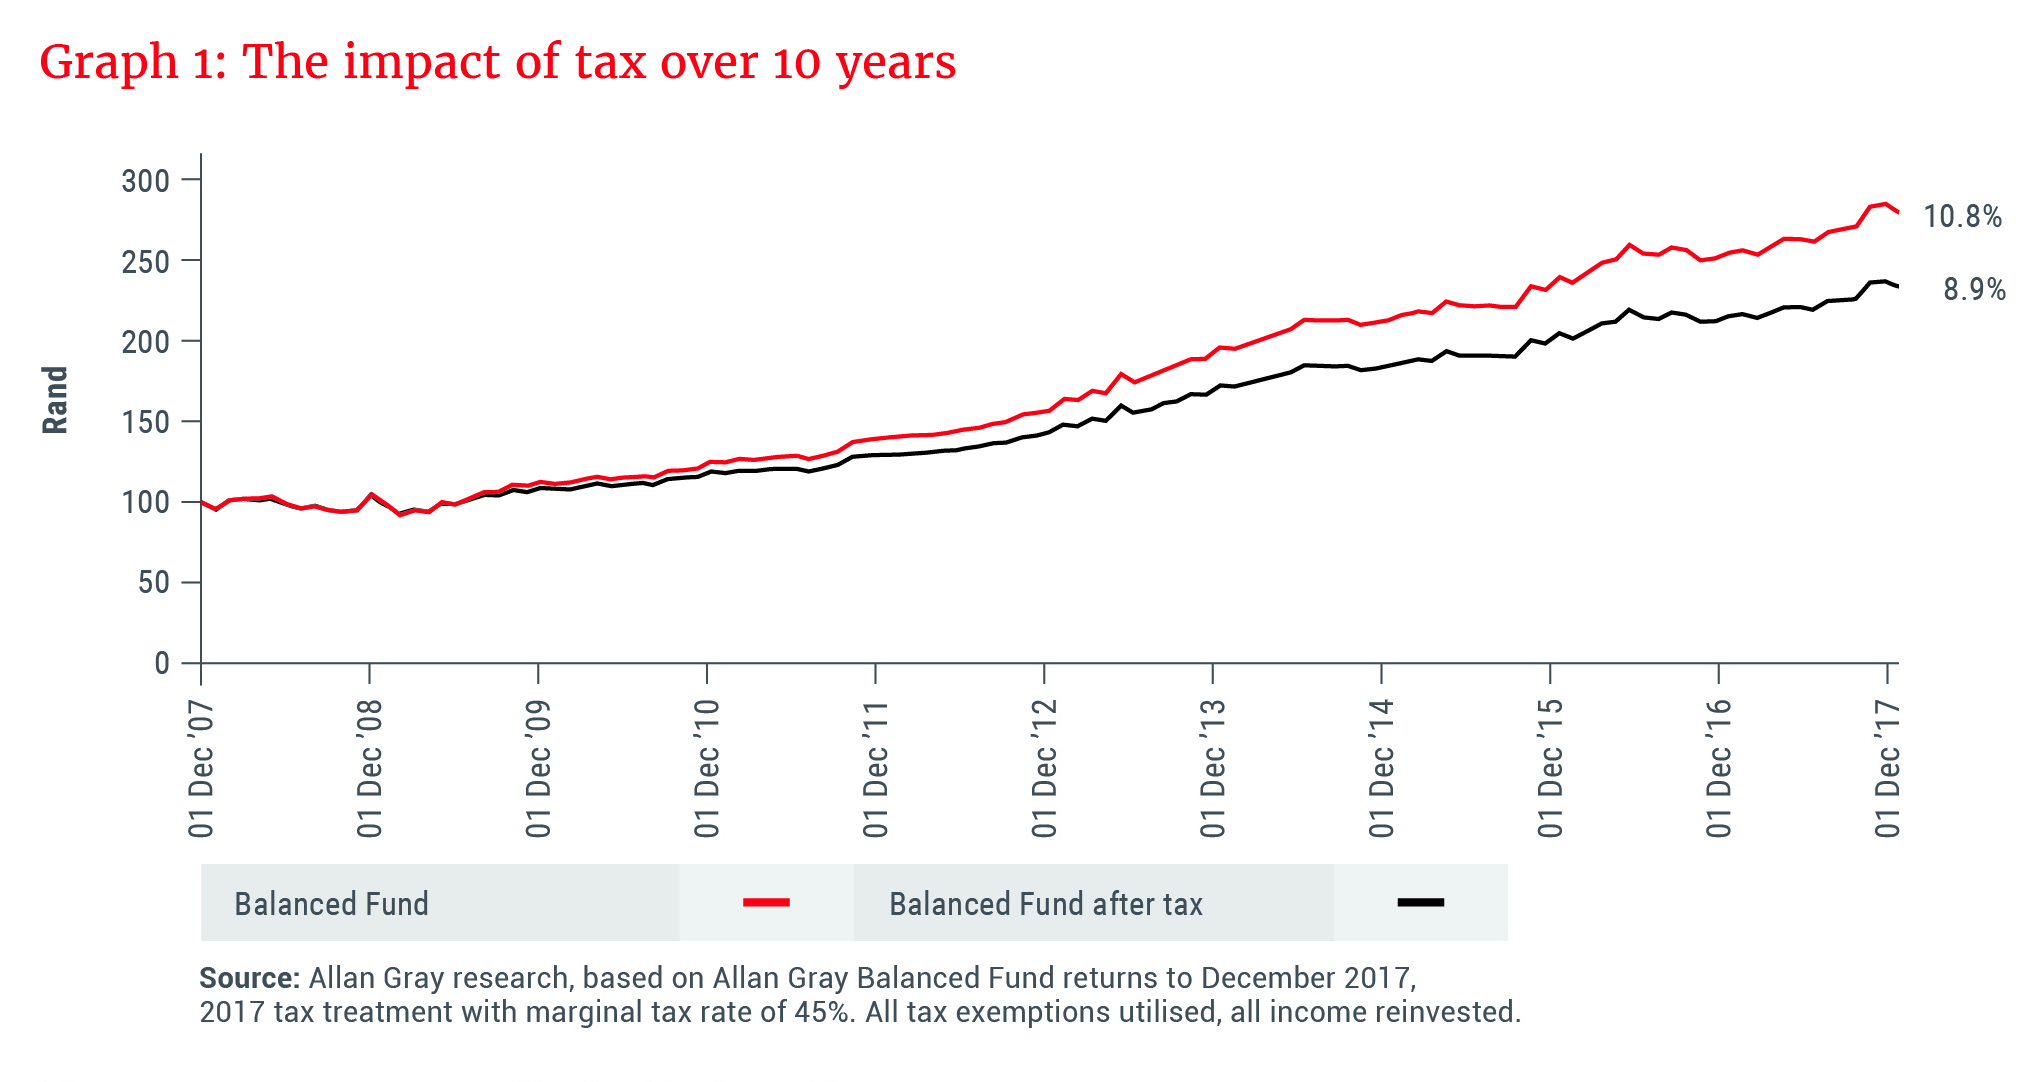 The impact of tax over 10 years.